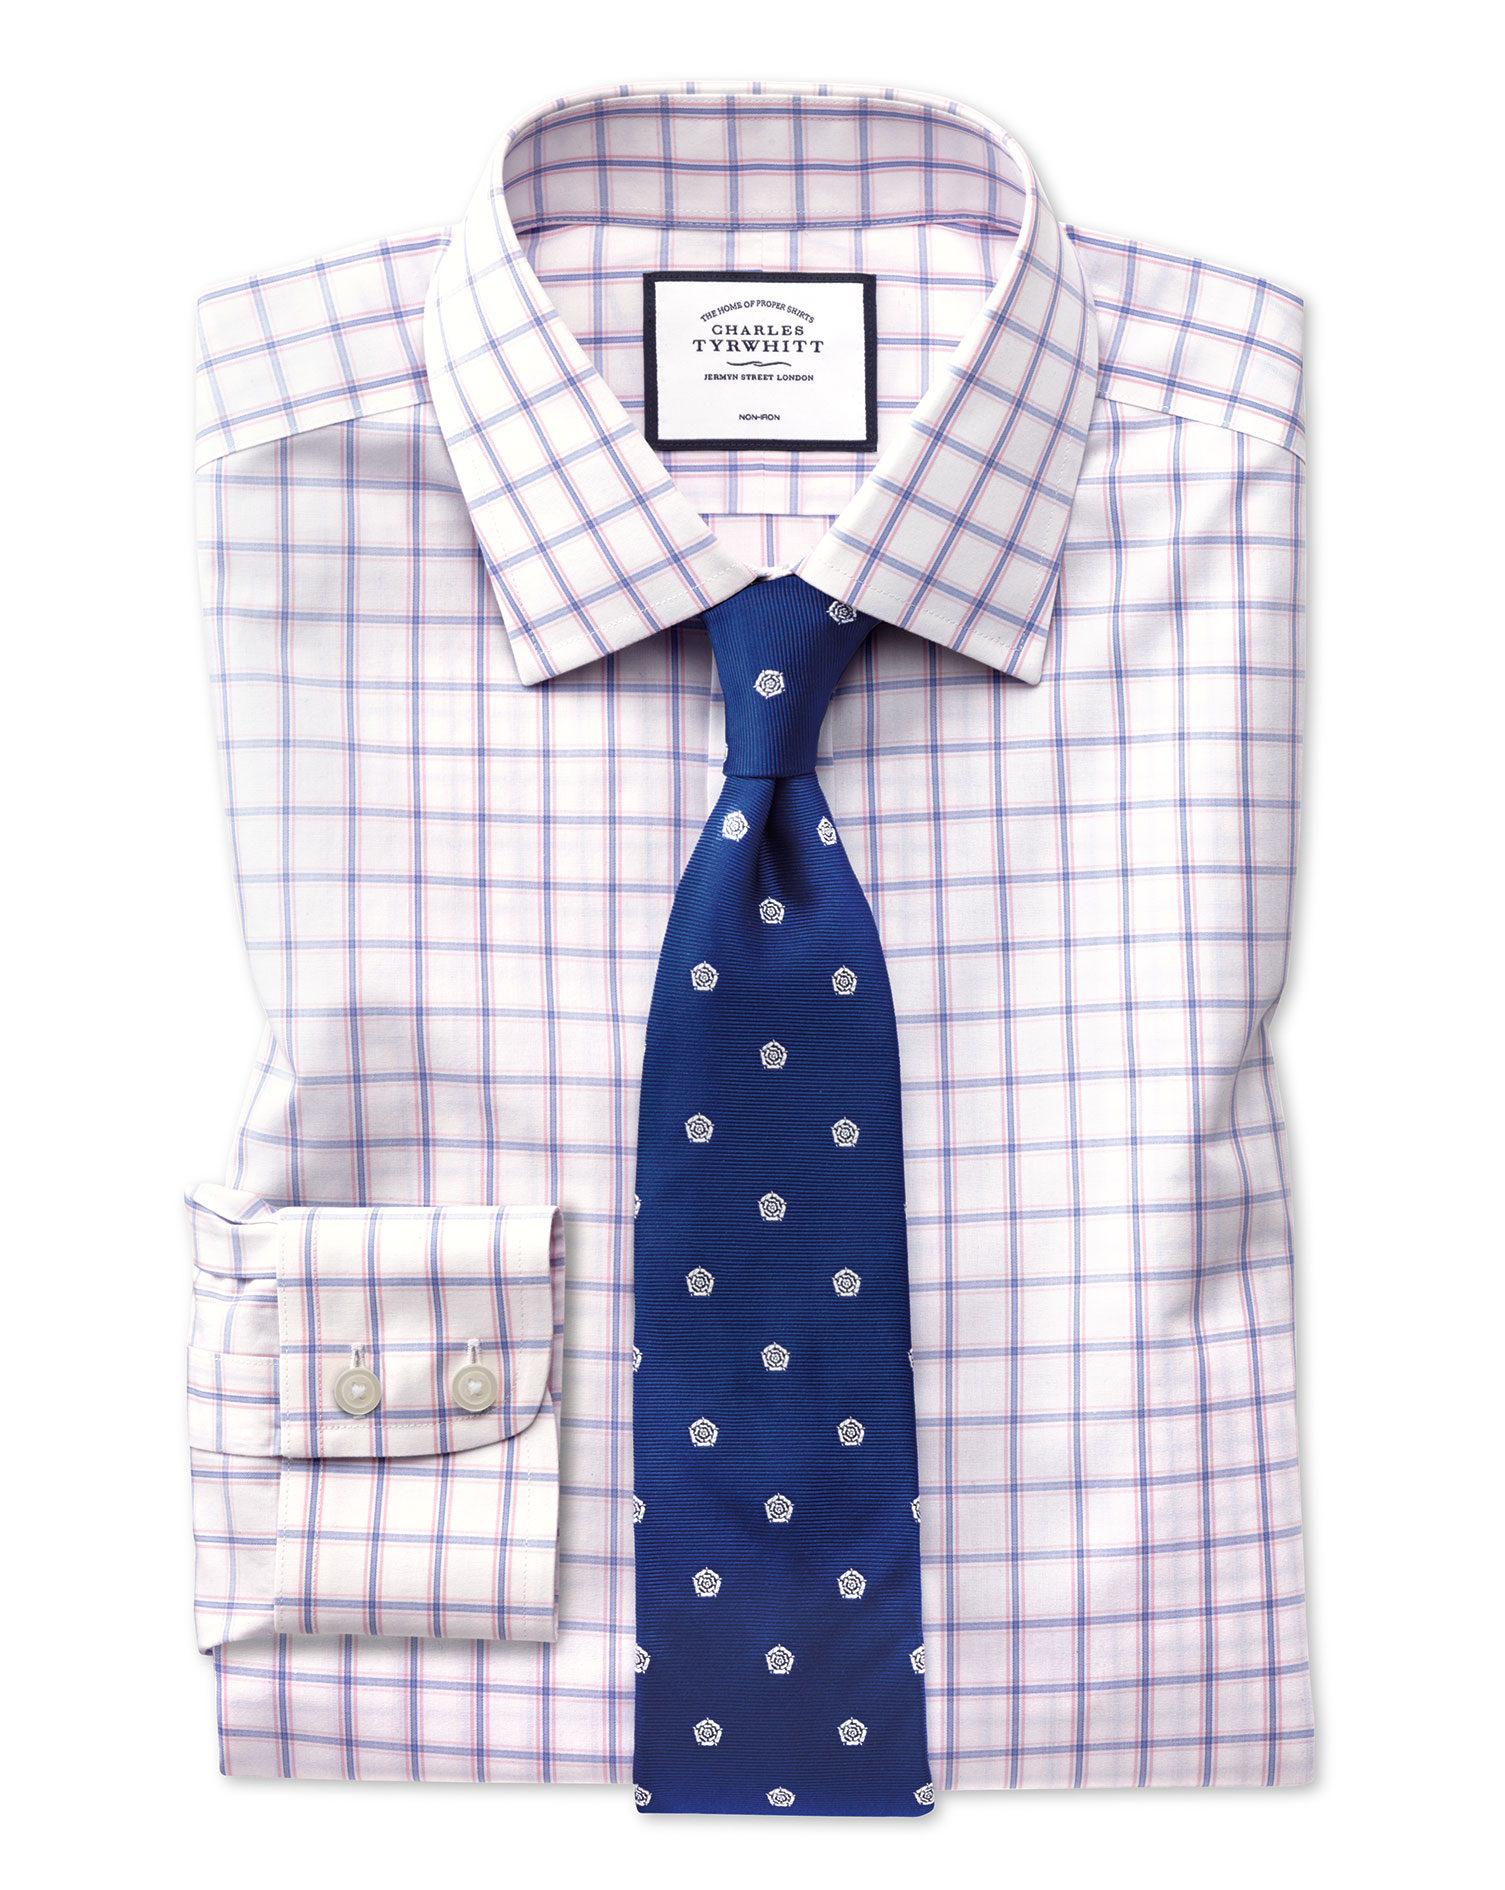 Classic Fit Non-Iron Multi Check Pink Cotton Formal Shirt Single Cuff Size 18/35 by Charles Tyrwhitt